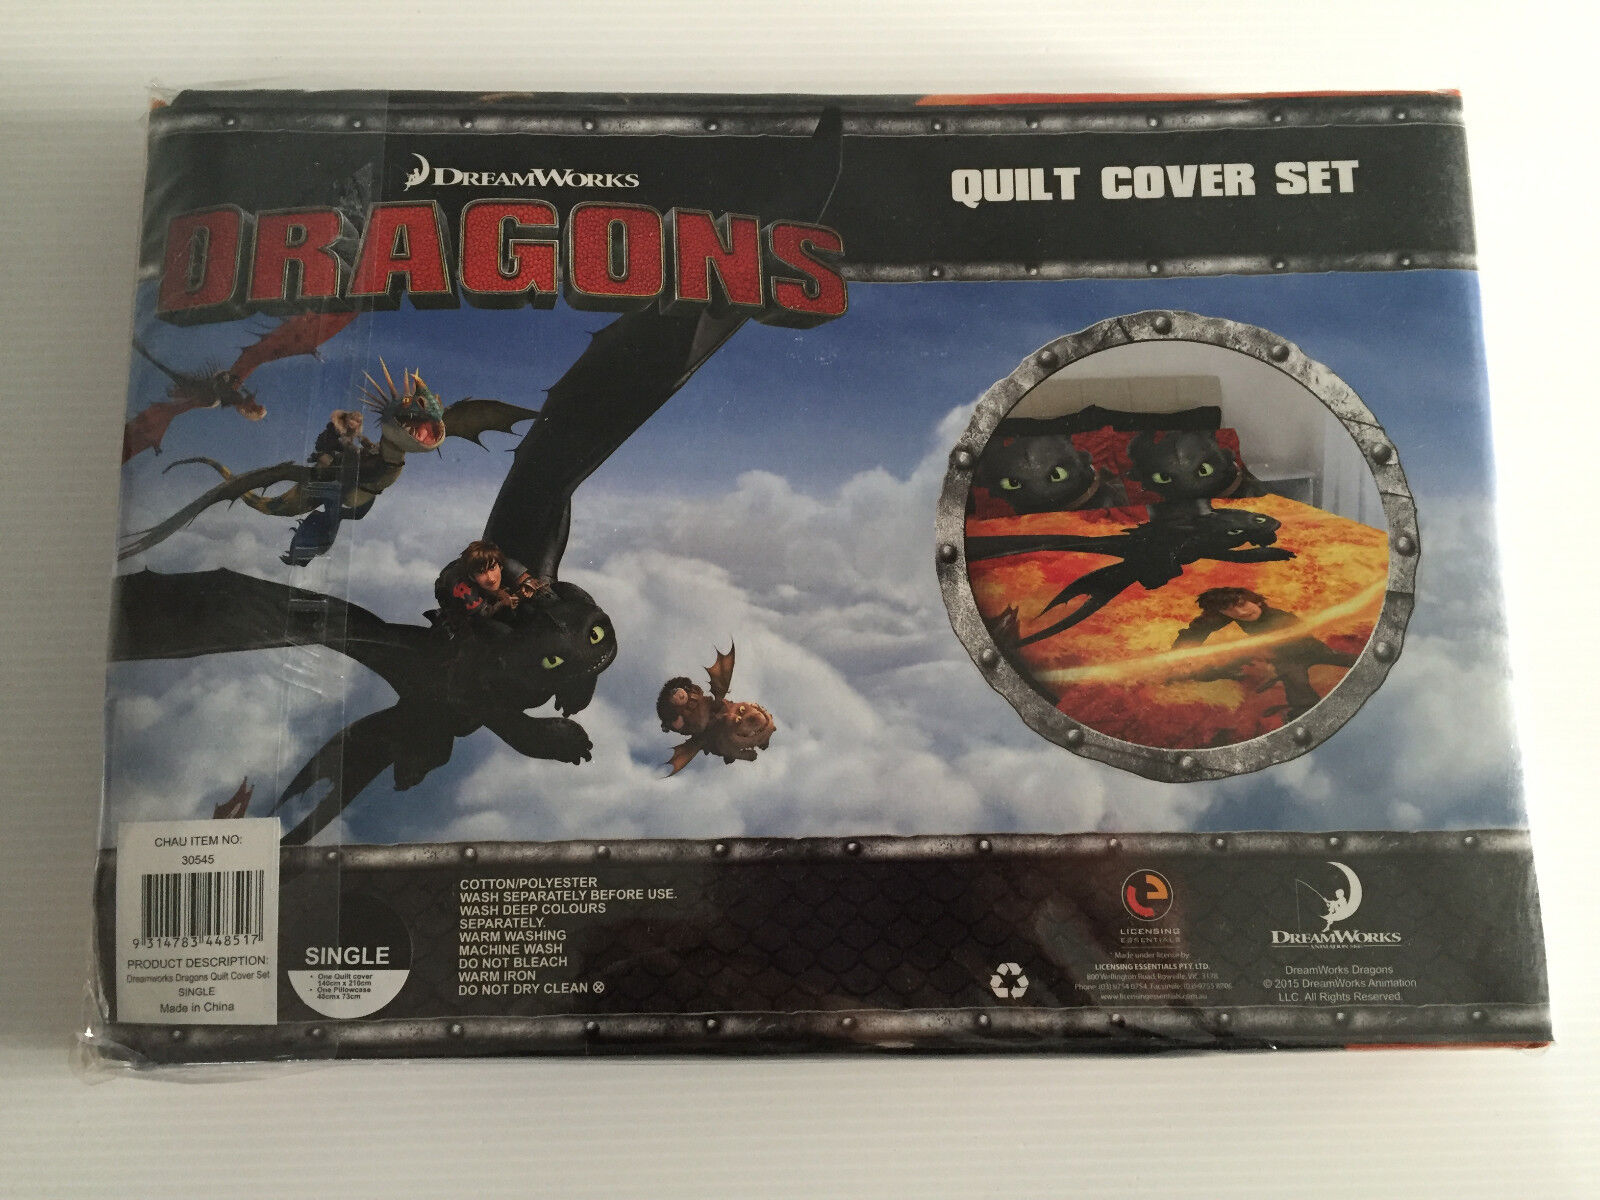 Dreamworks how to train your dragon chau single twin bed quilt cover picture 1 of 3 ccuart Gallery